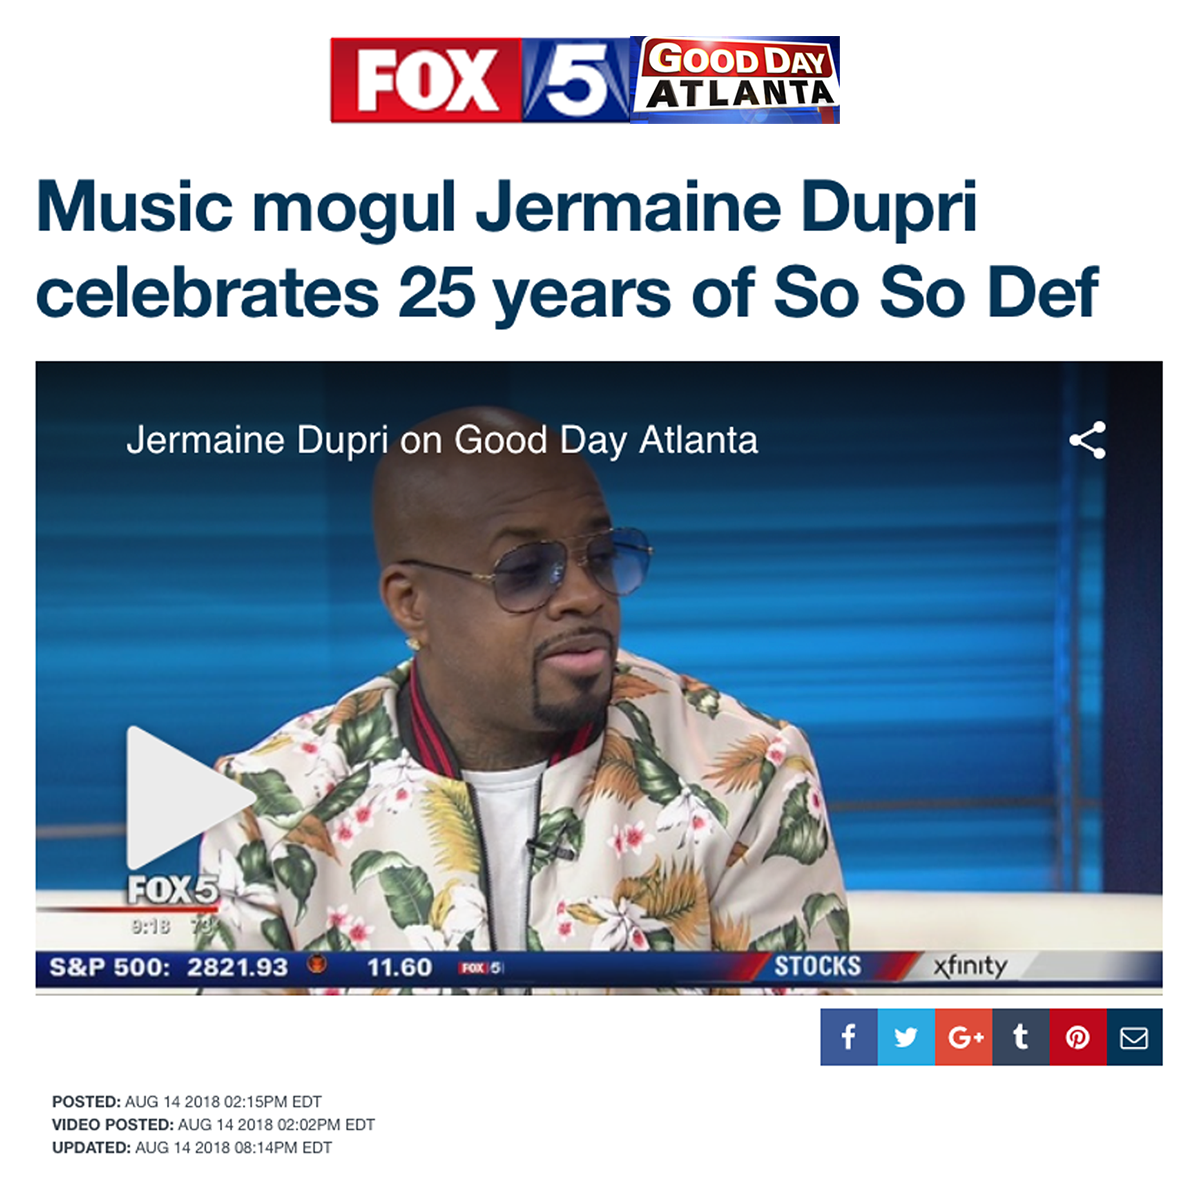 Jermaine and So So Def on Good Day Atlanta